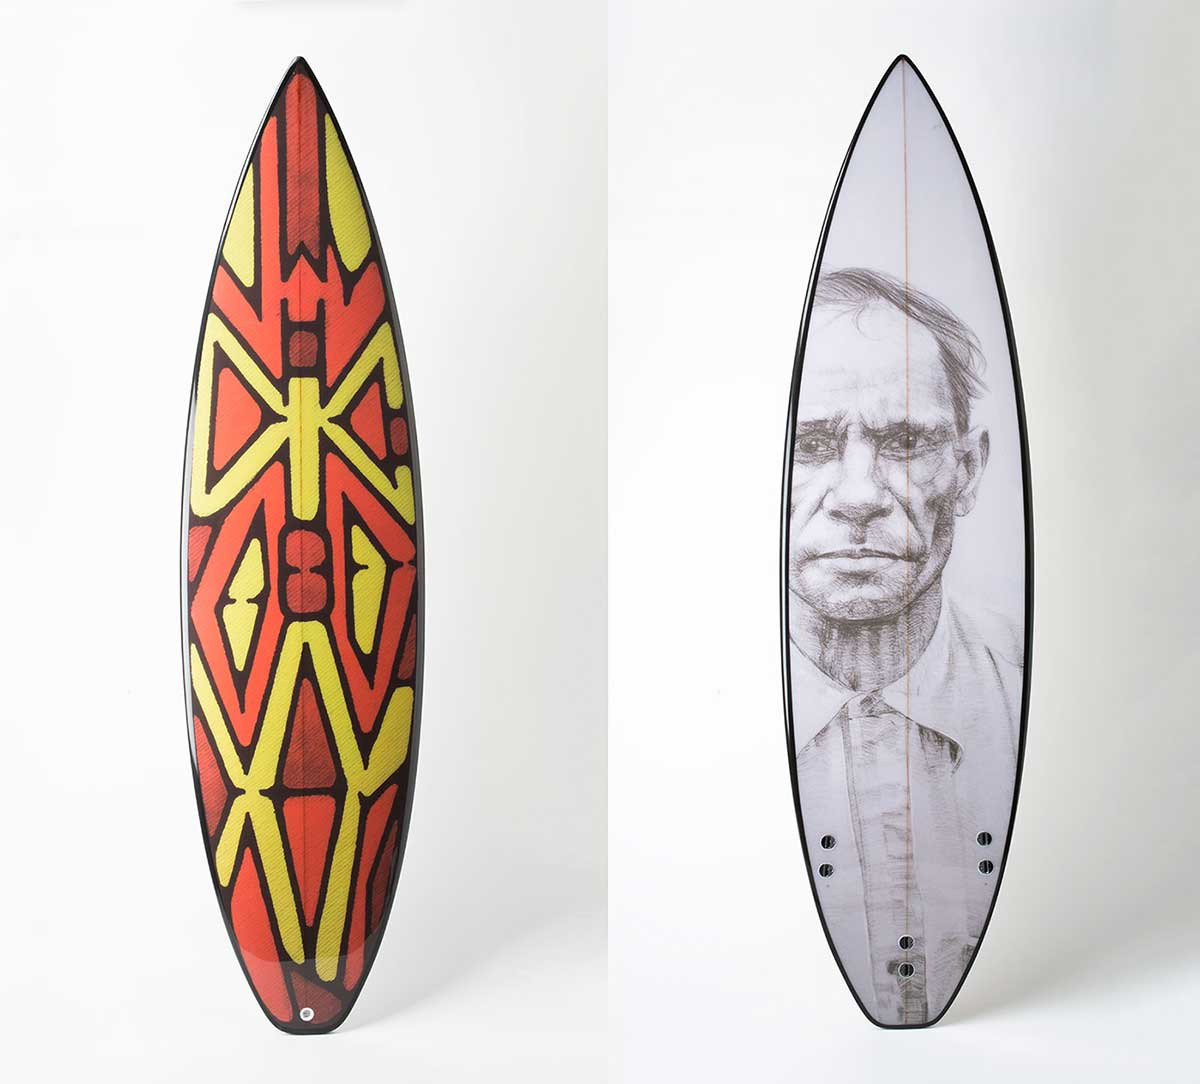 A fibreglass surfboard featuring a rainforest shield design on the front, with a portrait in black and white on the reverse.